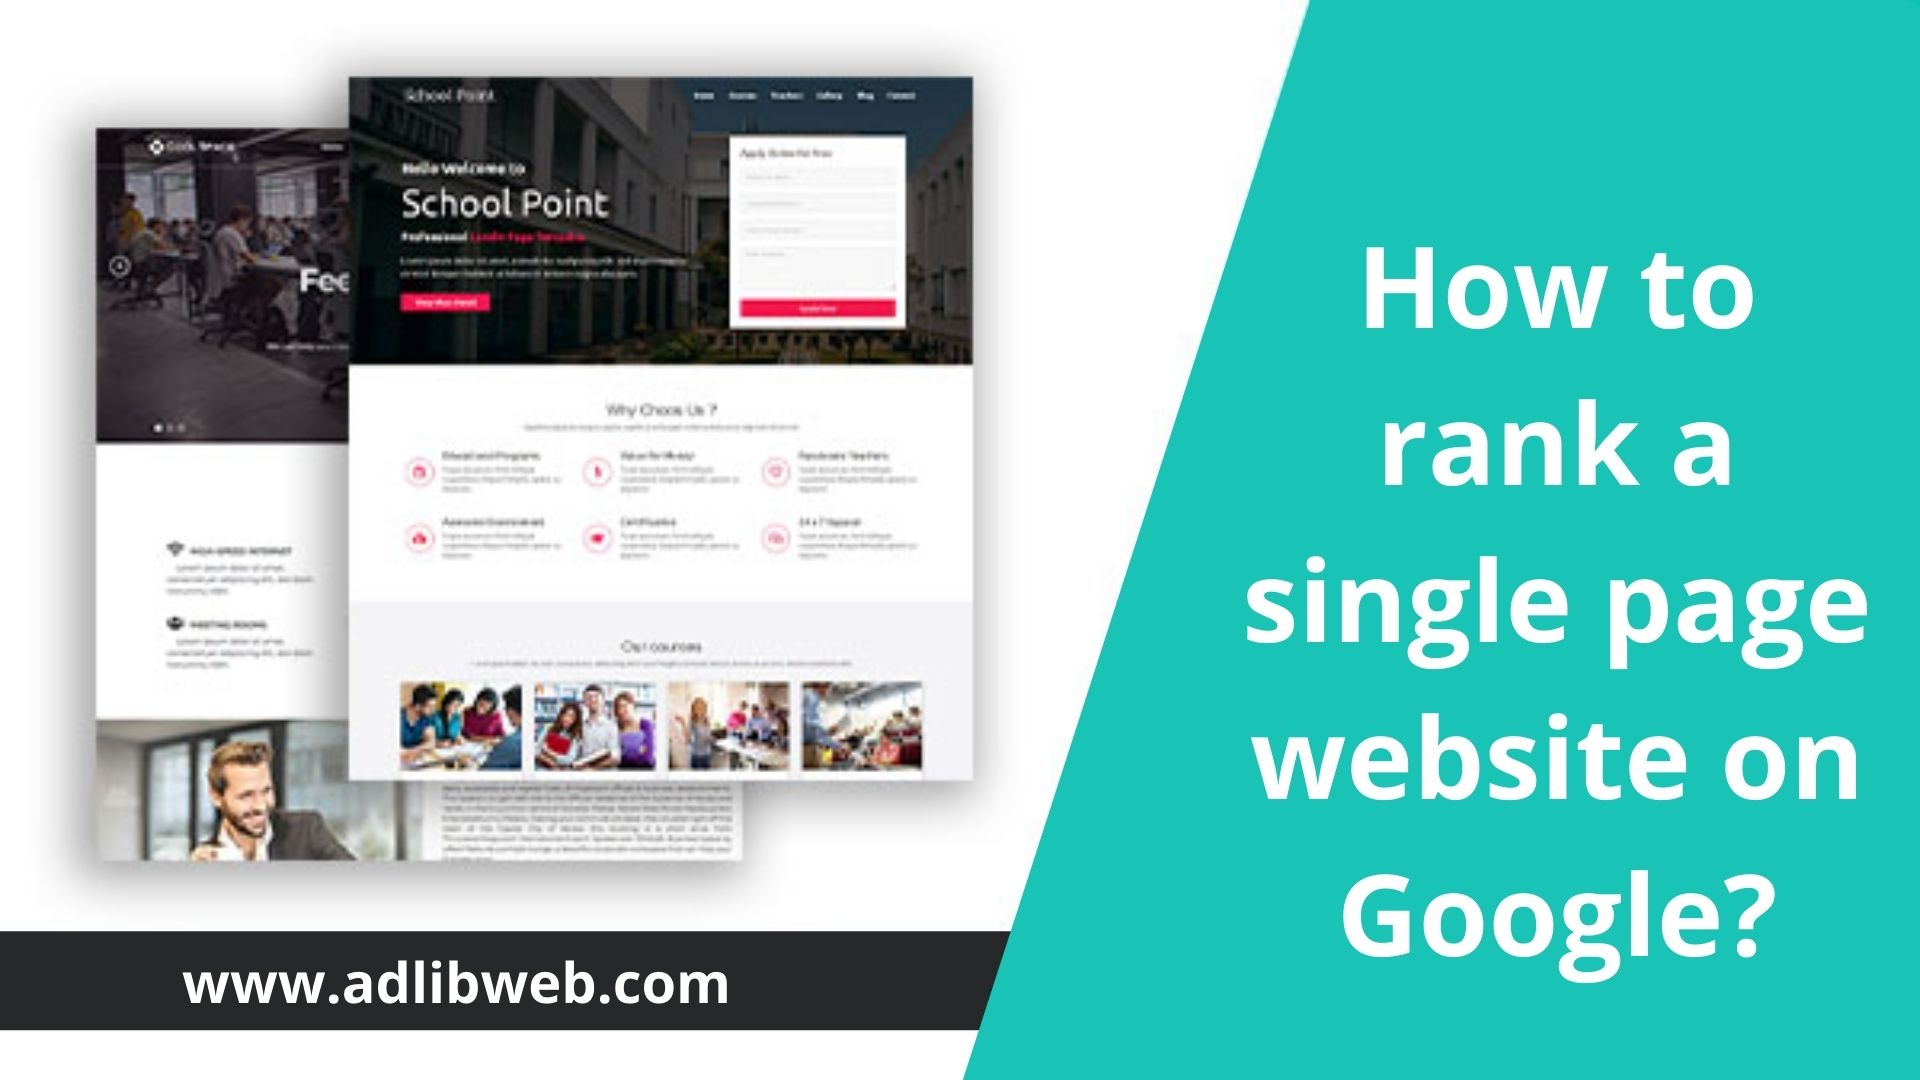 How to rank a single page website on Google?